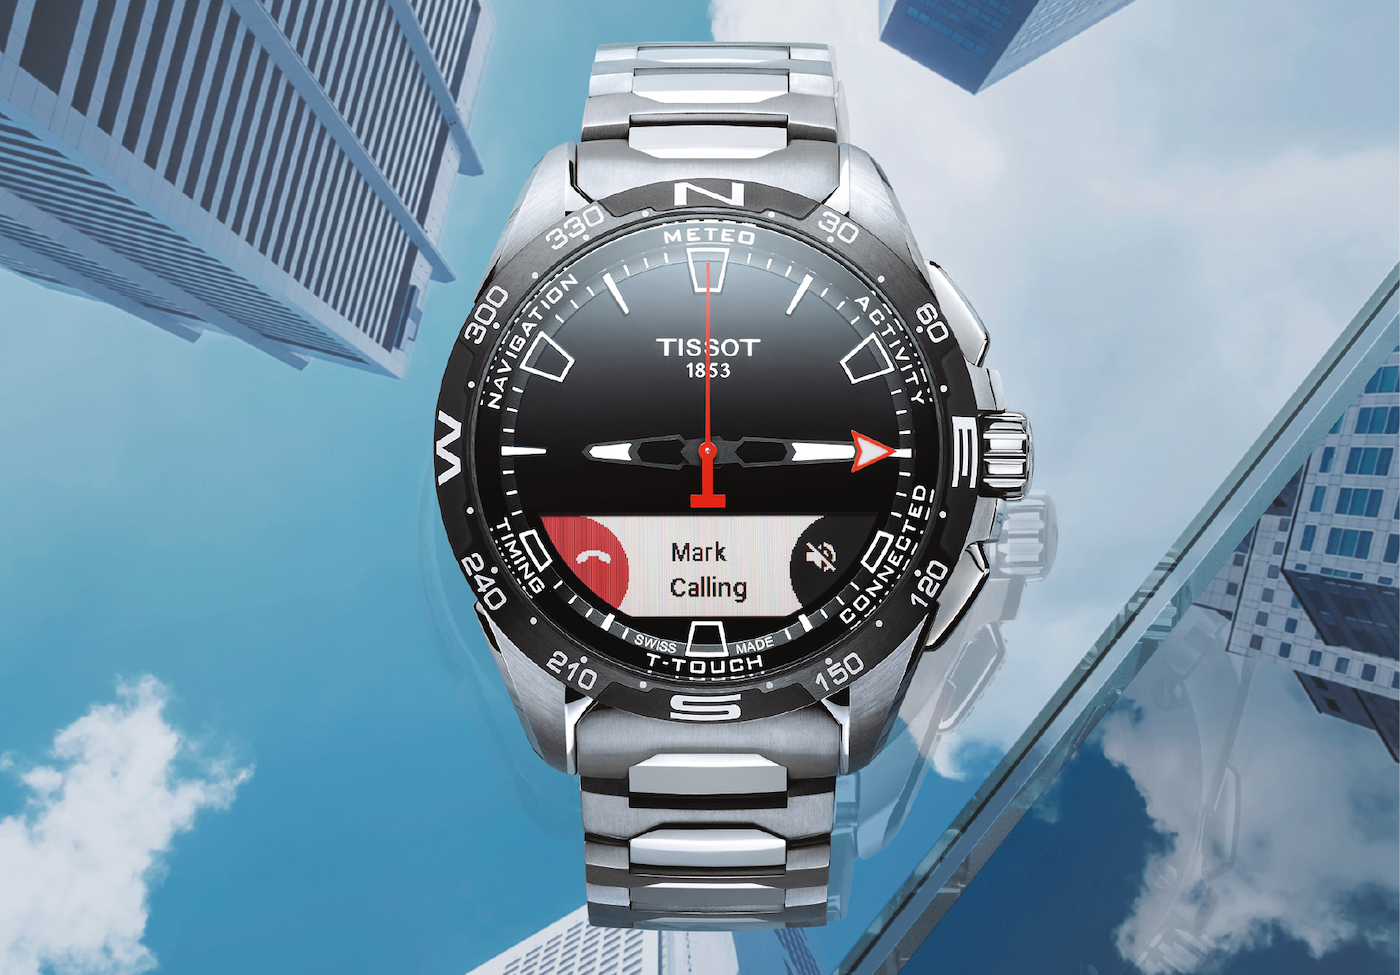 Tissot: connection without disruption